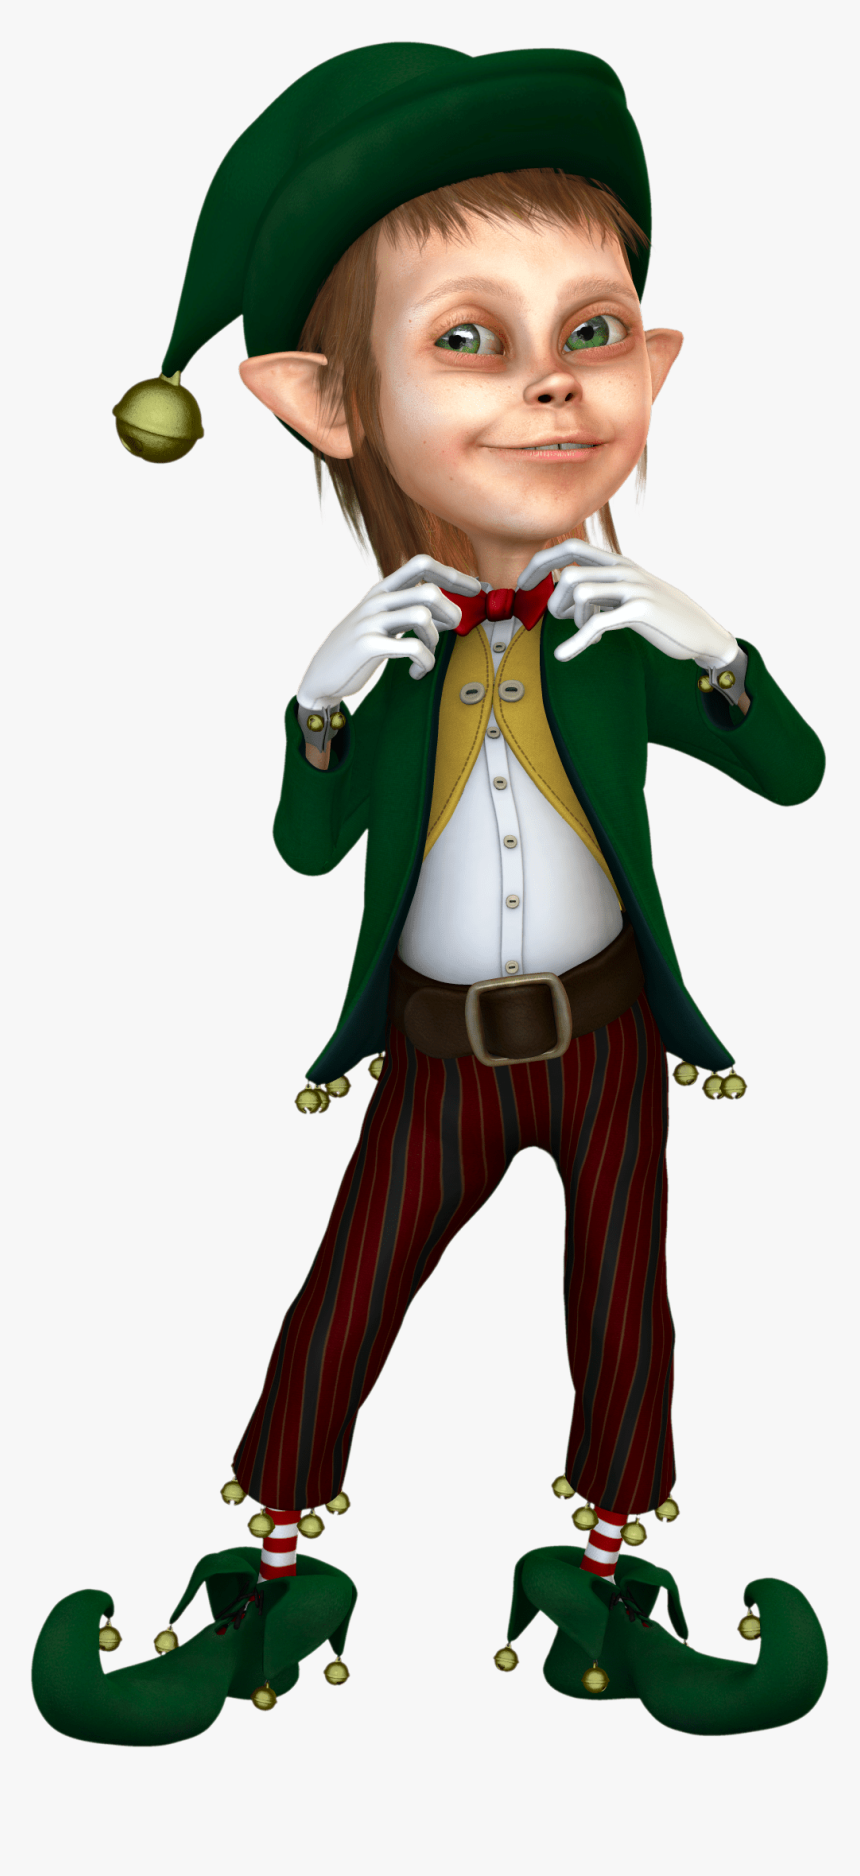 Christmas Elf Clipart Throughout Elf Clipart - Real Santa Claus Elf, HD Png Download, Free Download